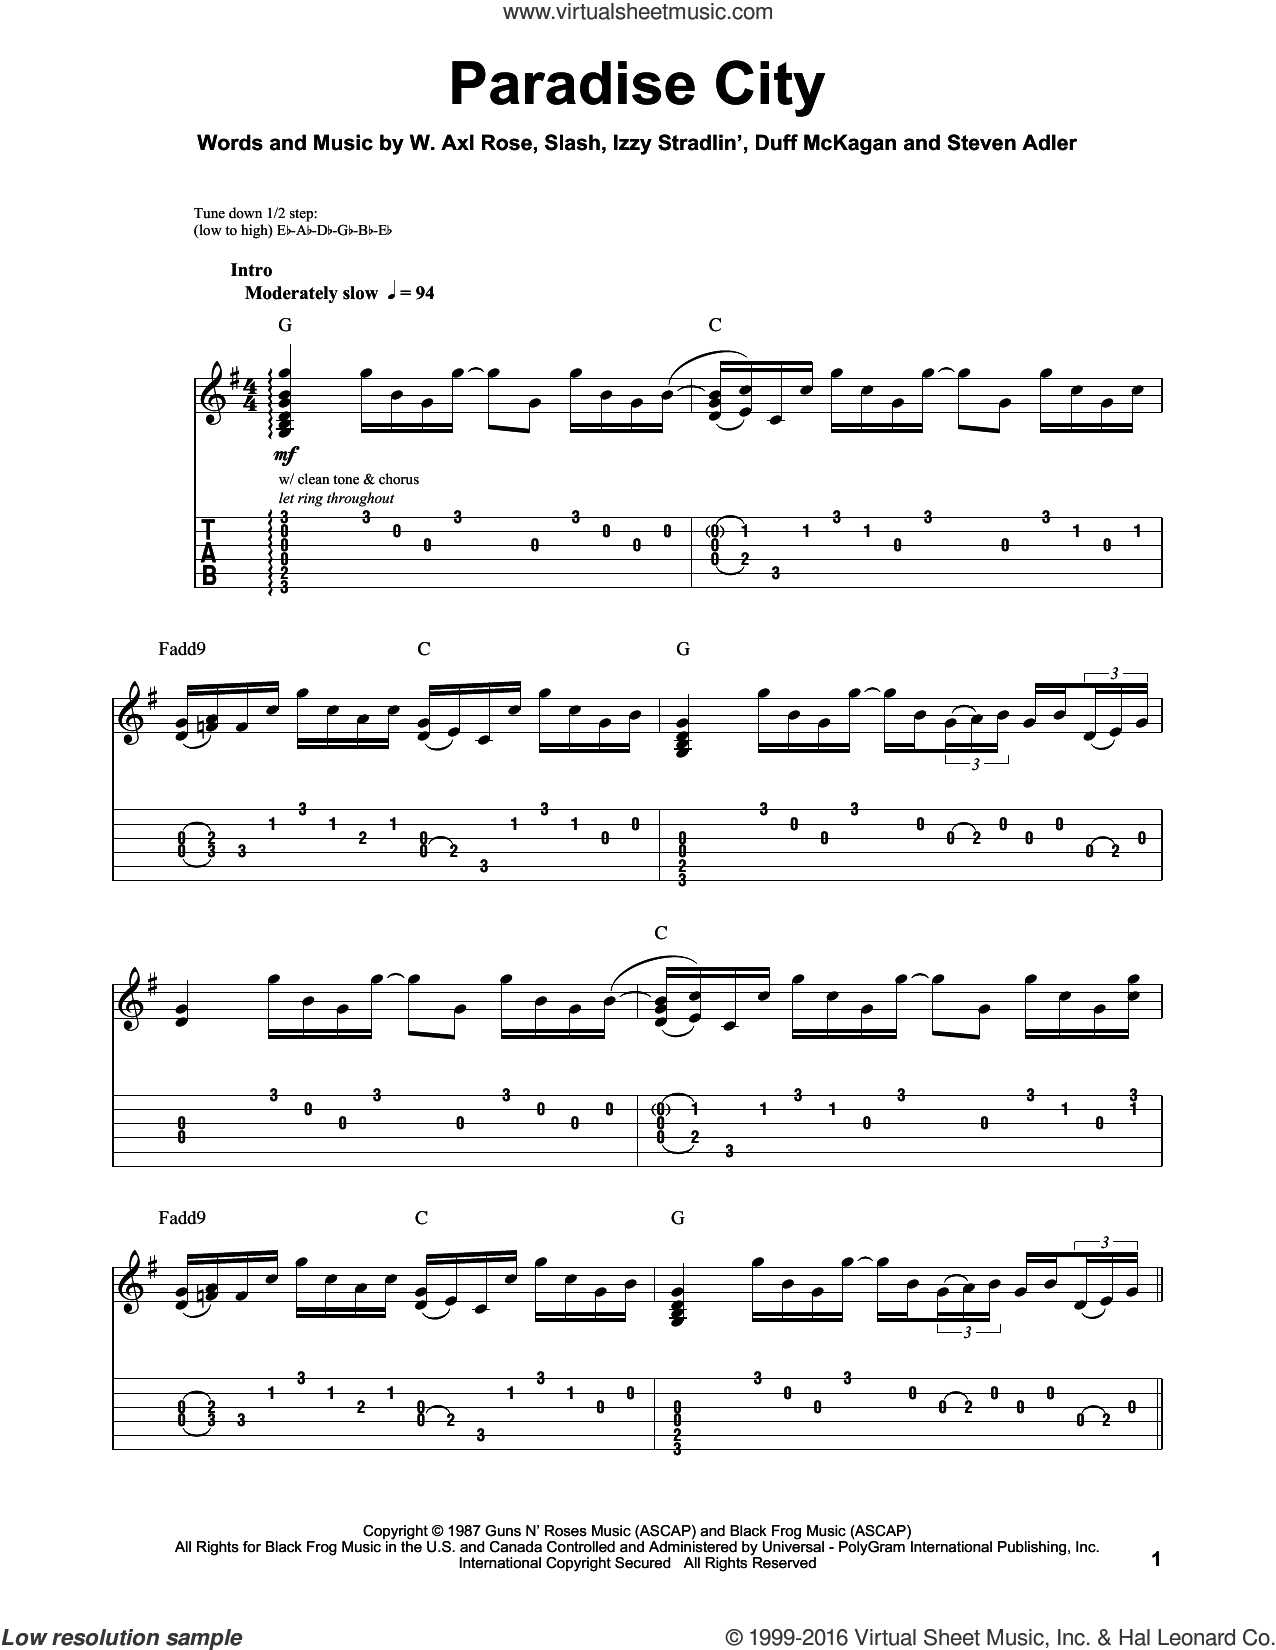 Paradise City sheet music for guitar (tablature, play-along) by Axl Rose, Duff McKagan, Slash and Steven Adler. Score Image Preview.